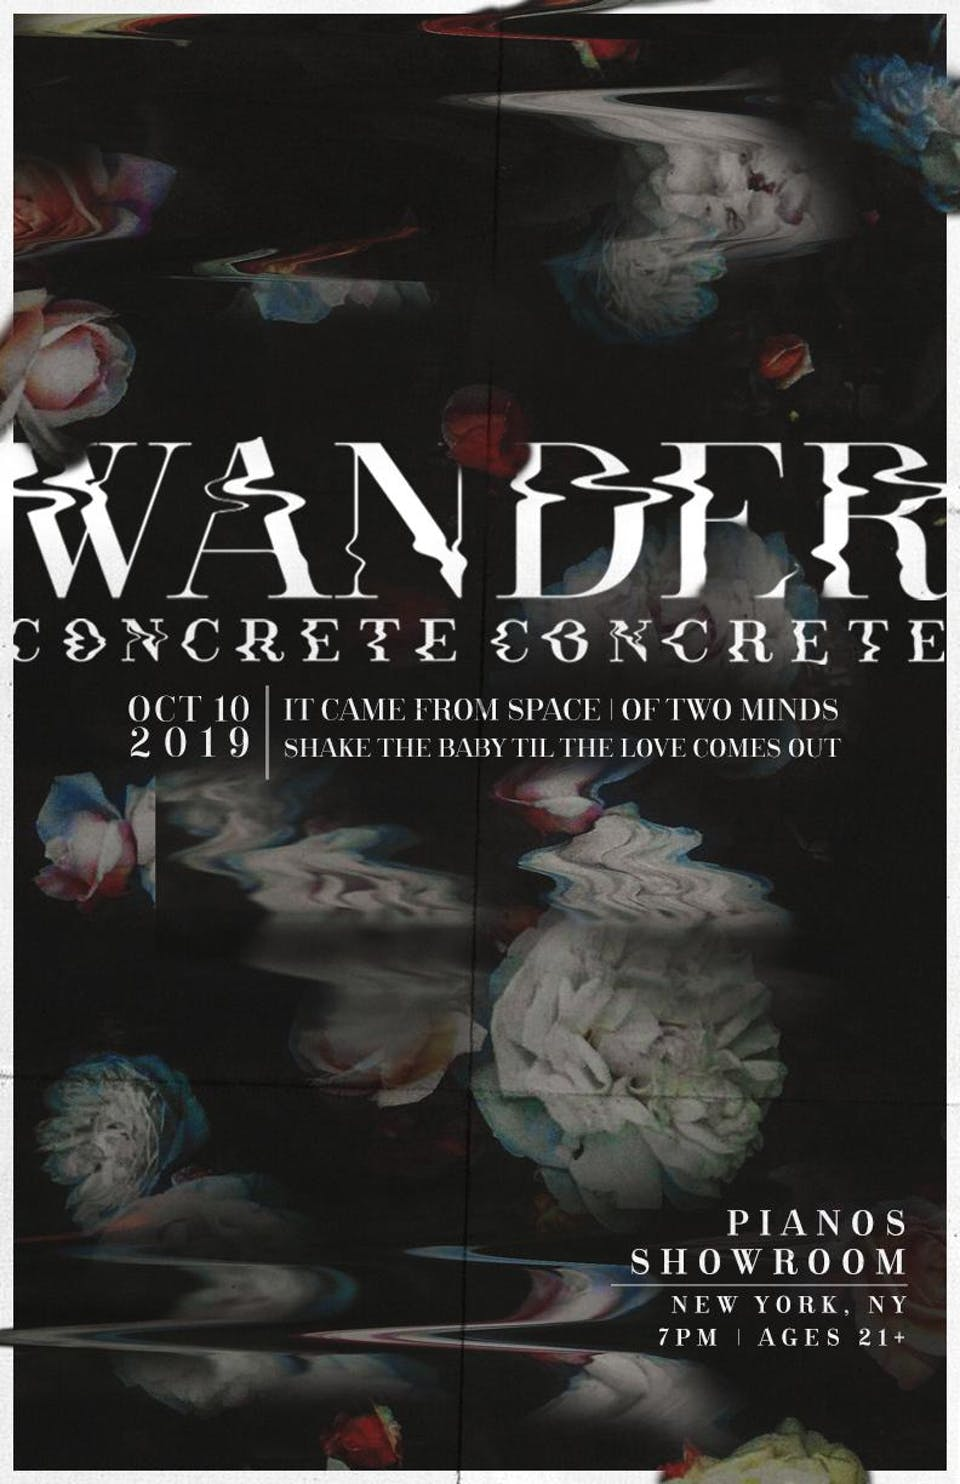 Concrete Concrete, Wander, It Came From Space, Of Two Minds, StBTtLCO